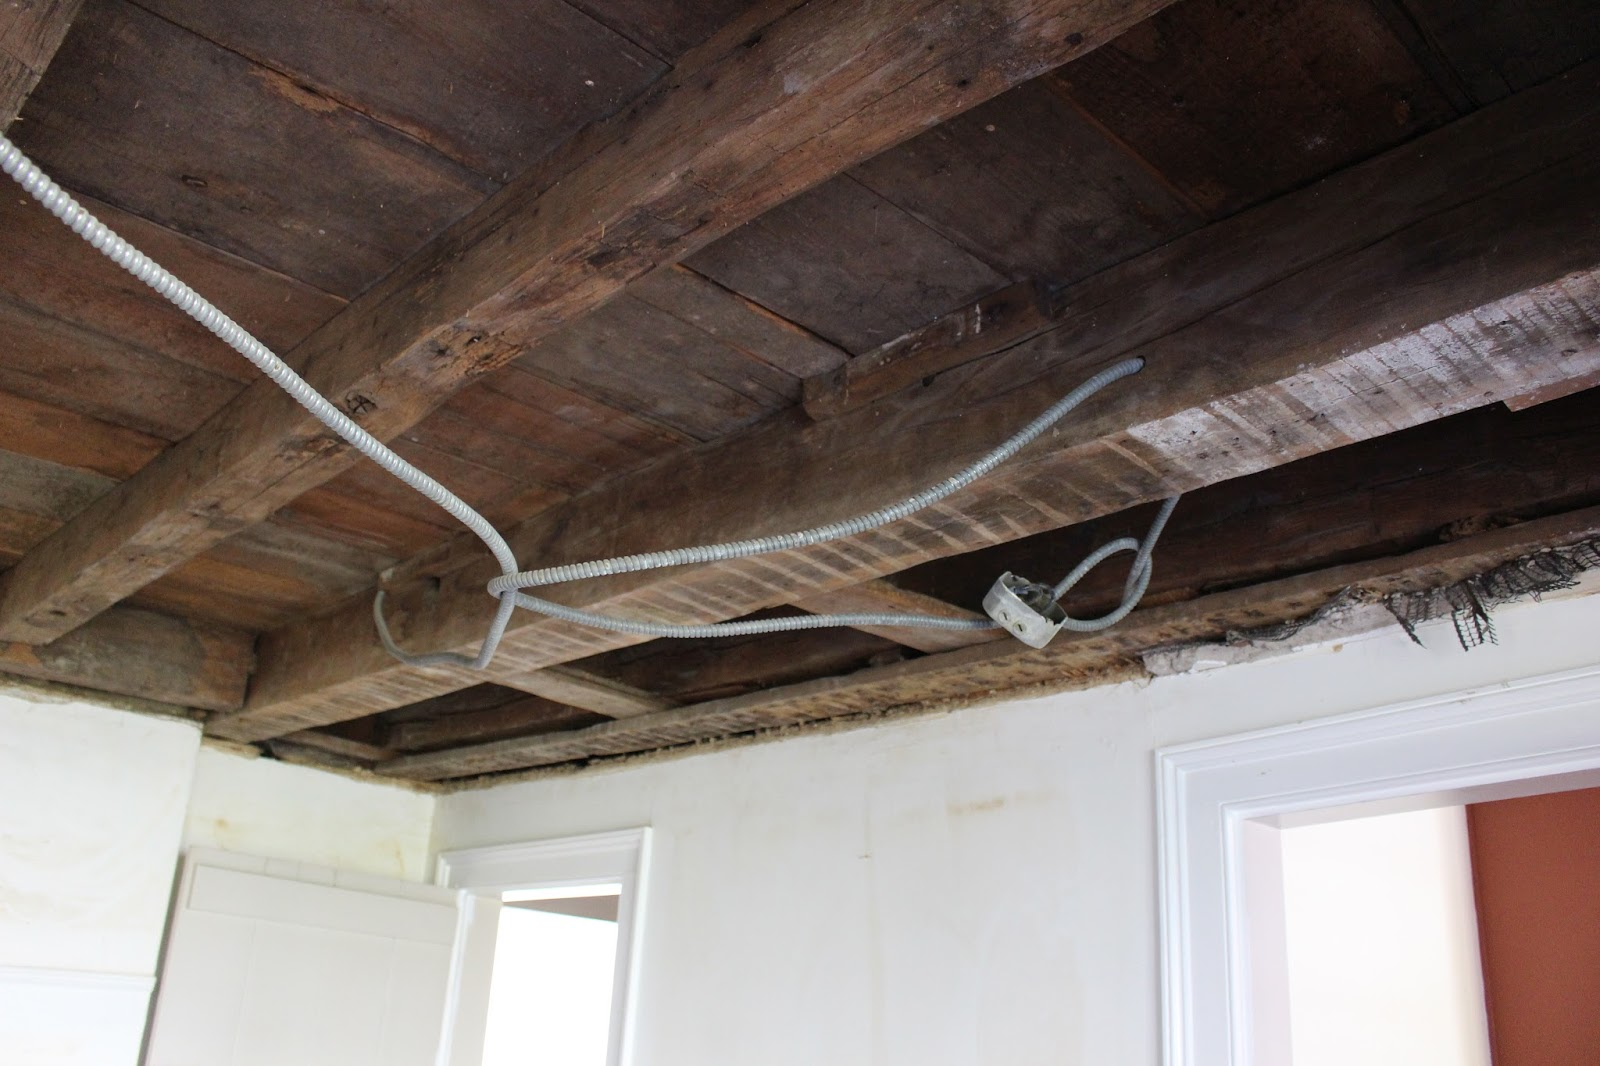 electrical running through ceiling beams